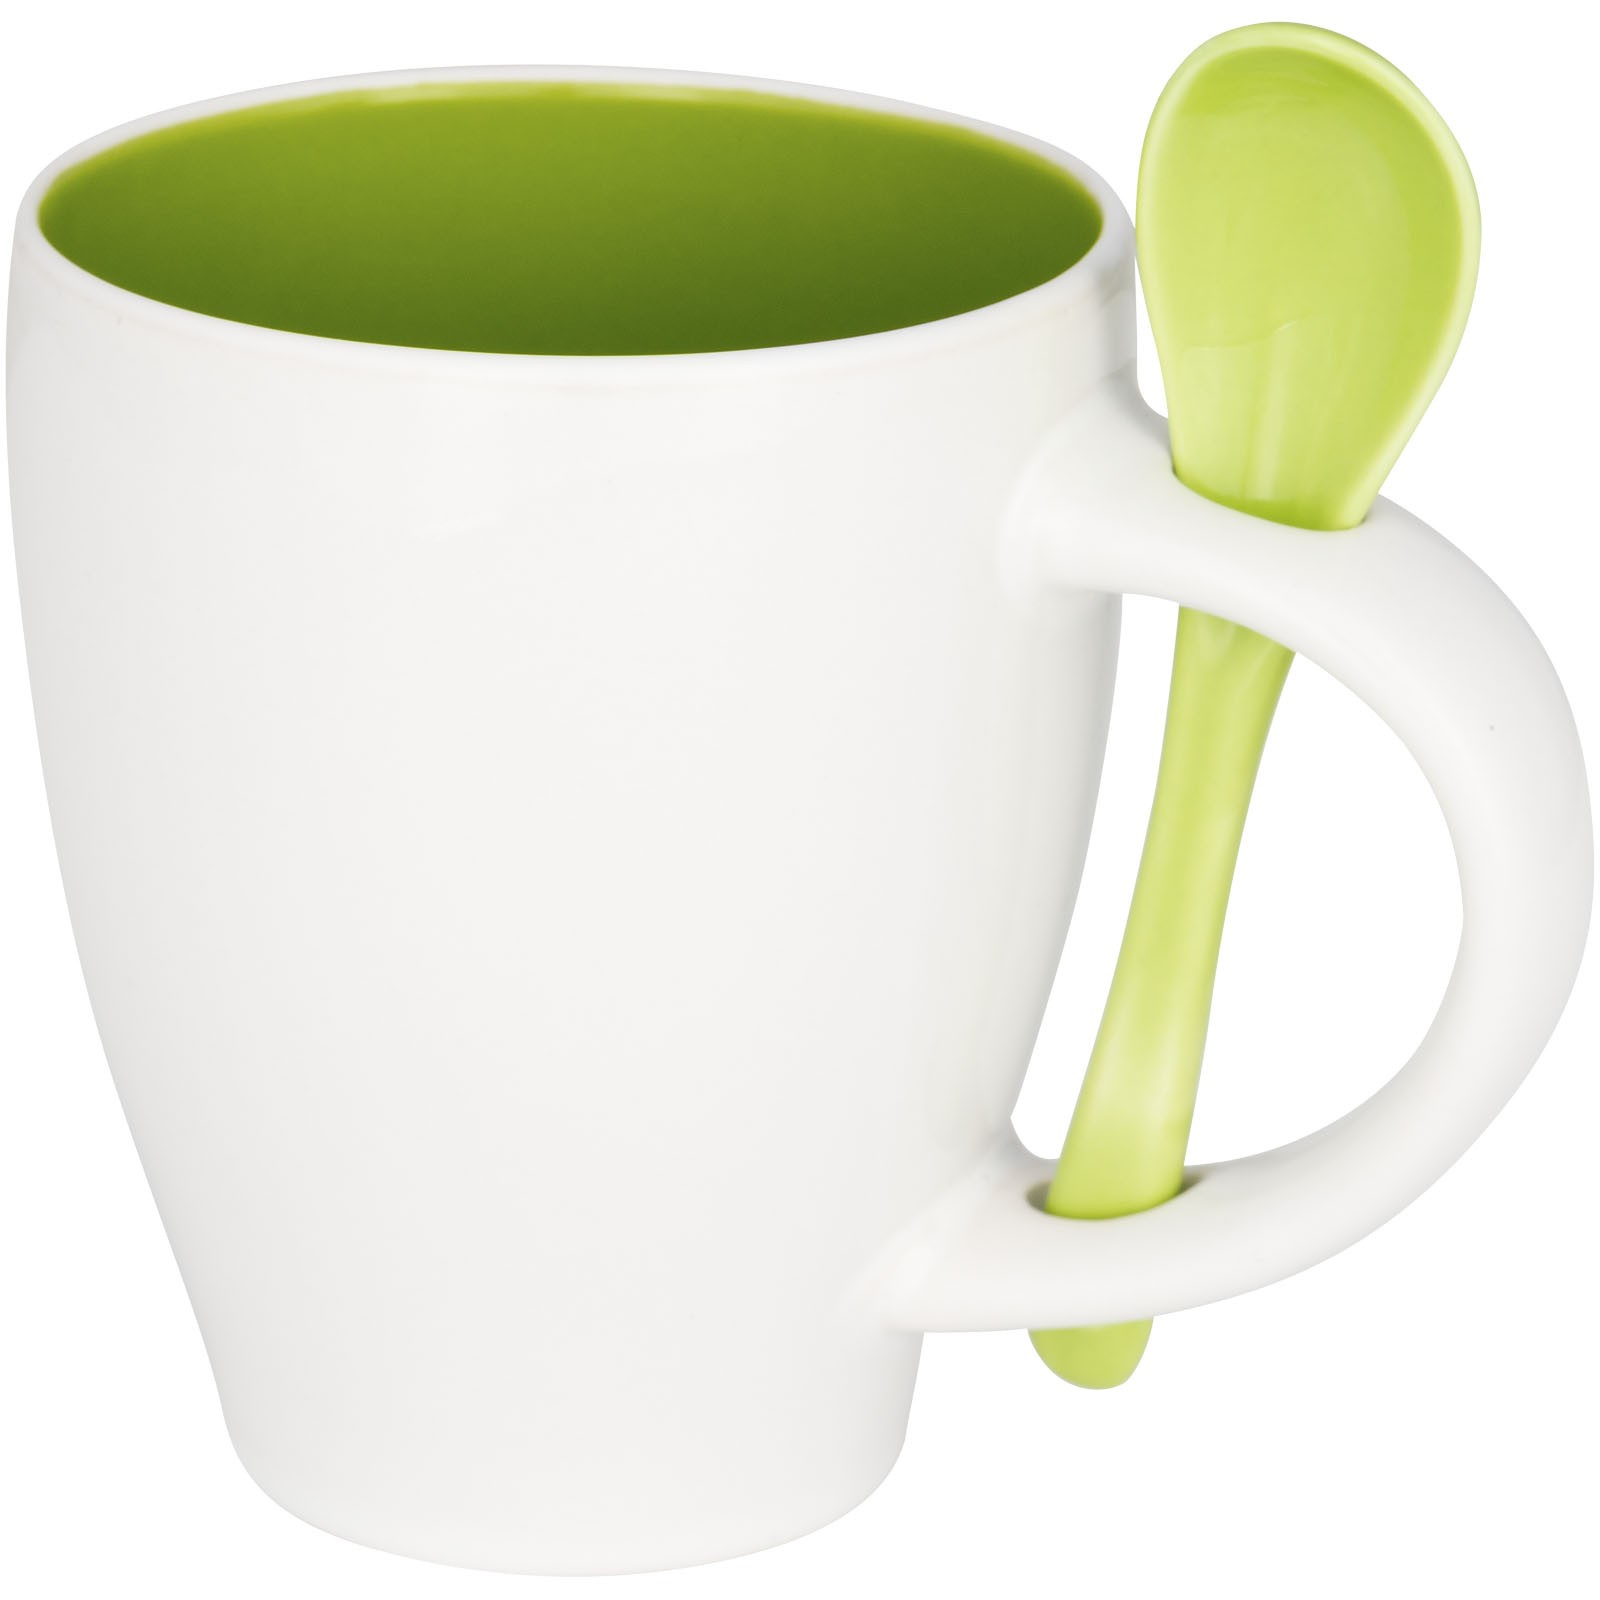 Nadu 250 ml ceramic mug with spoon - Lime